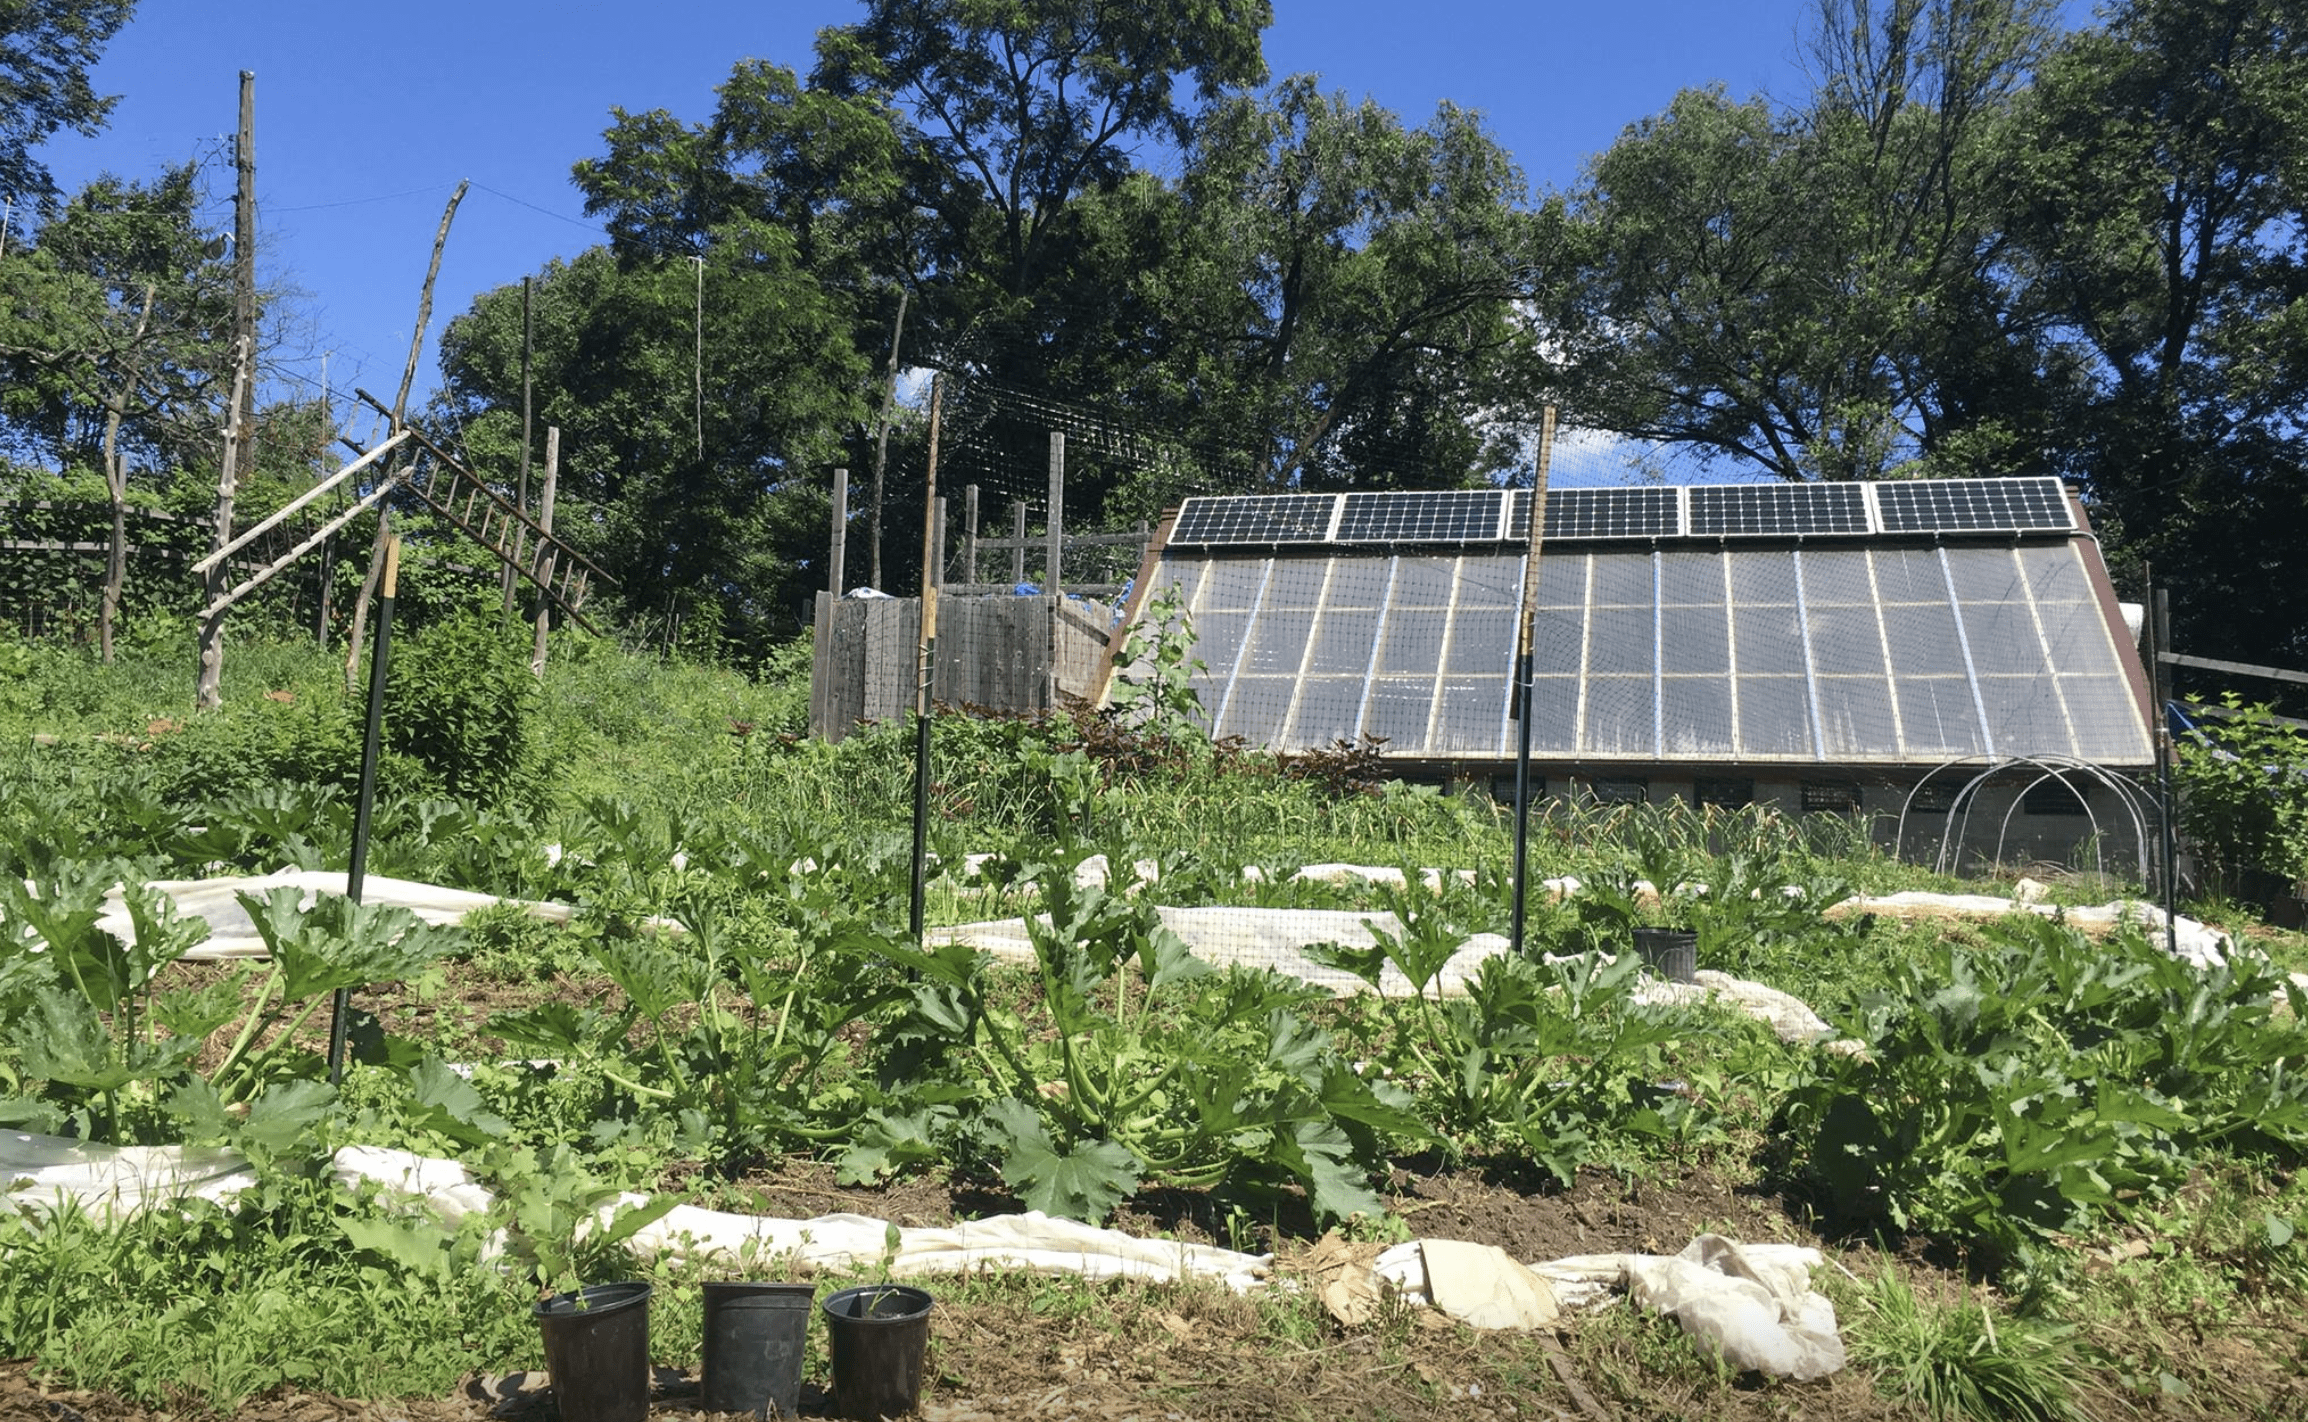 Weed Control For Small Farms [CRAFT]